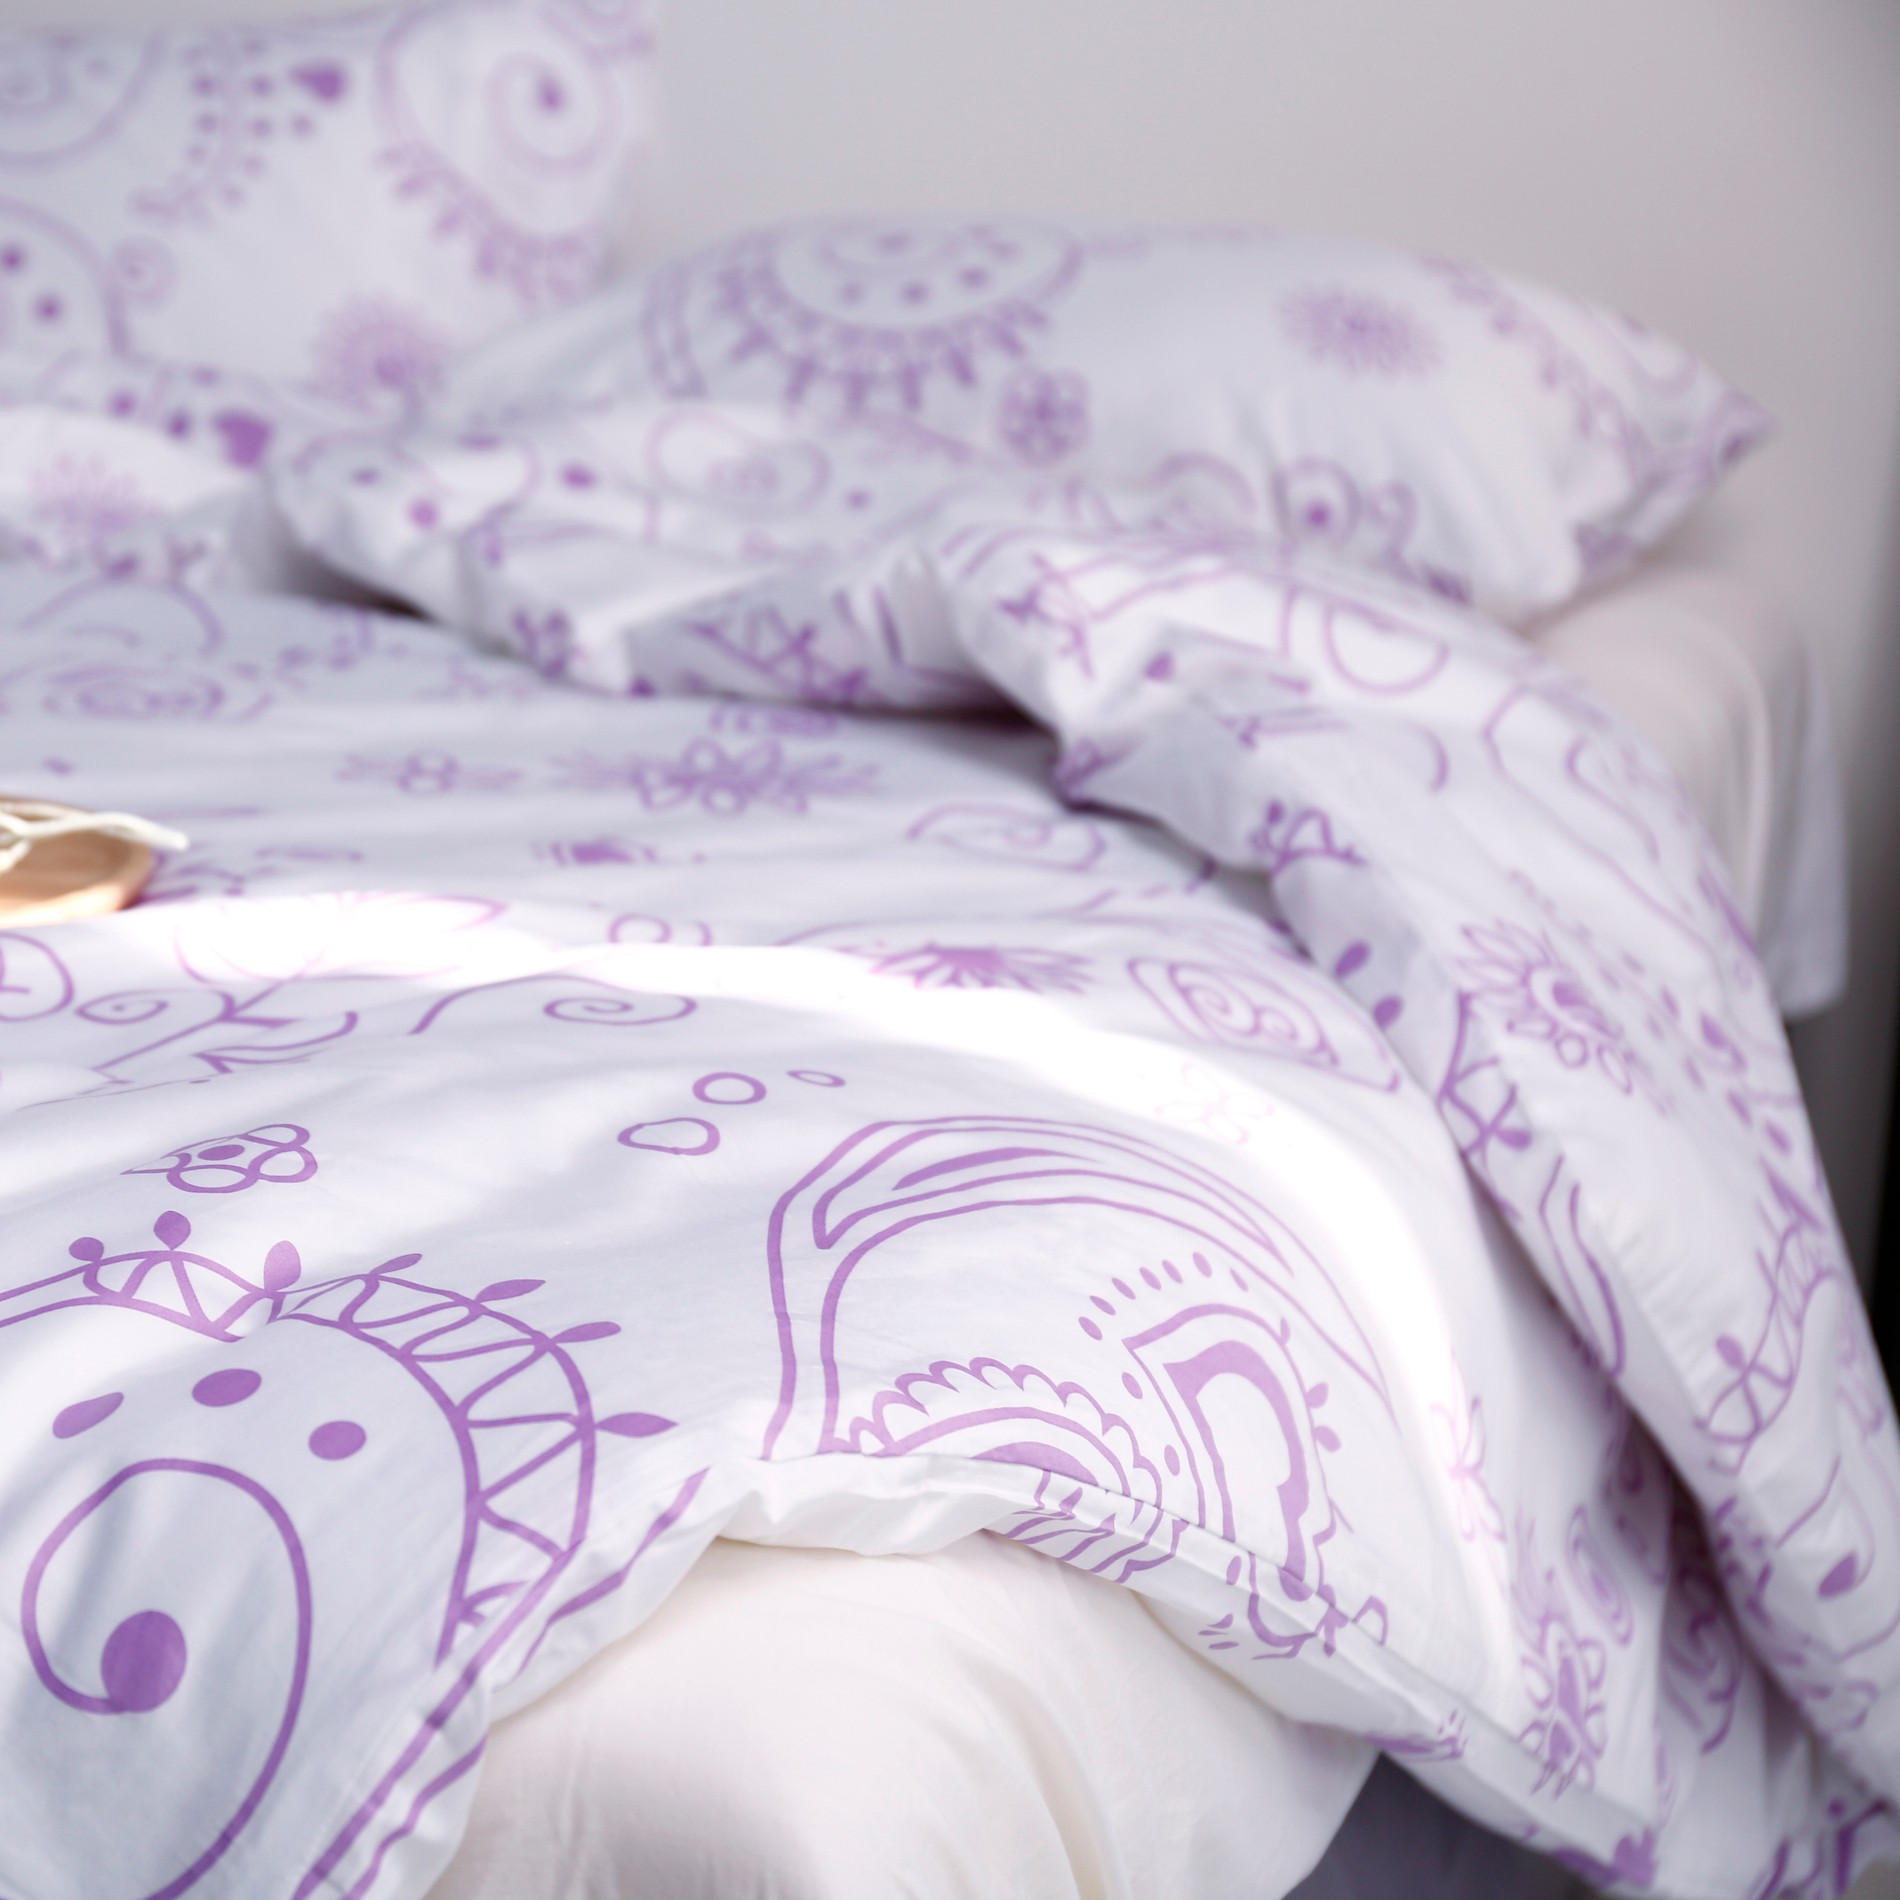 Luxury Bedding Sets Manufacturers, Luxury Bedding Sets Factory, Supply Luxury Bedding Sets